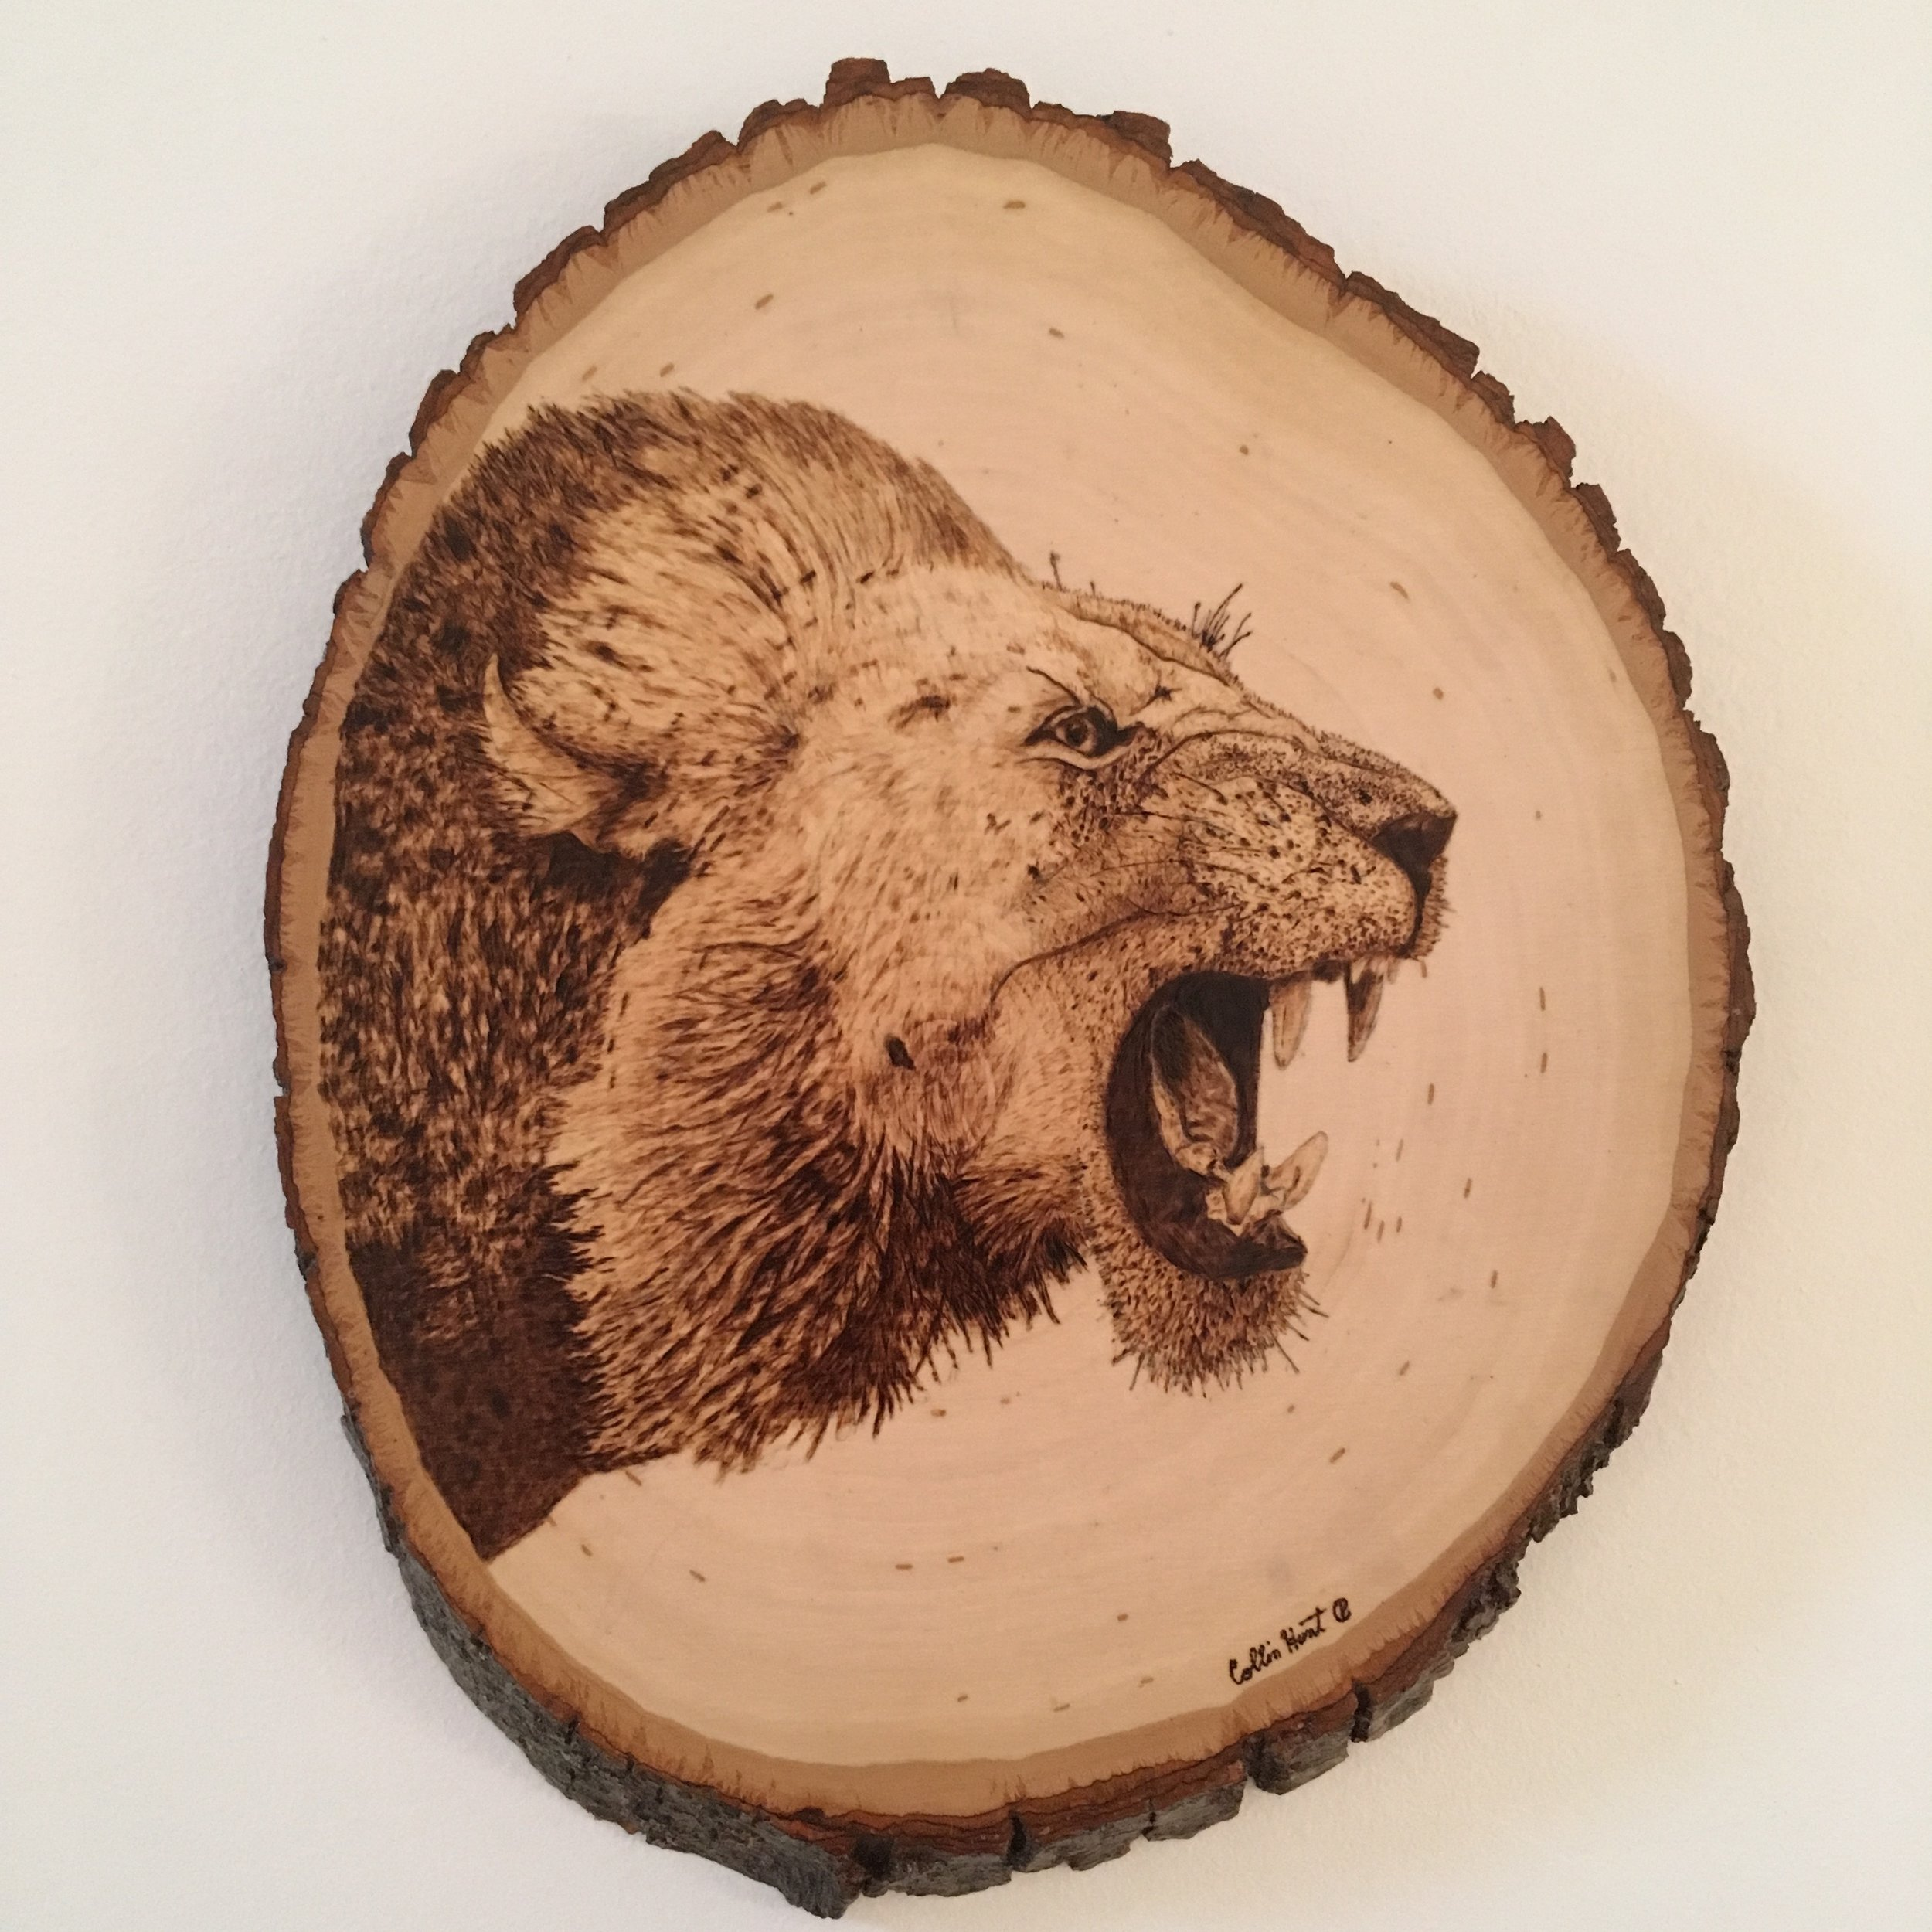 Created in the summer of 2018, this piece is wood burned on a round basswood.